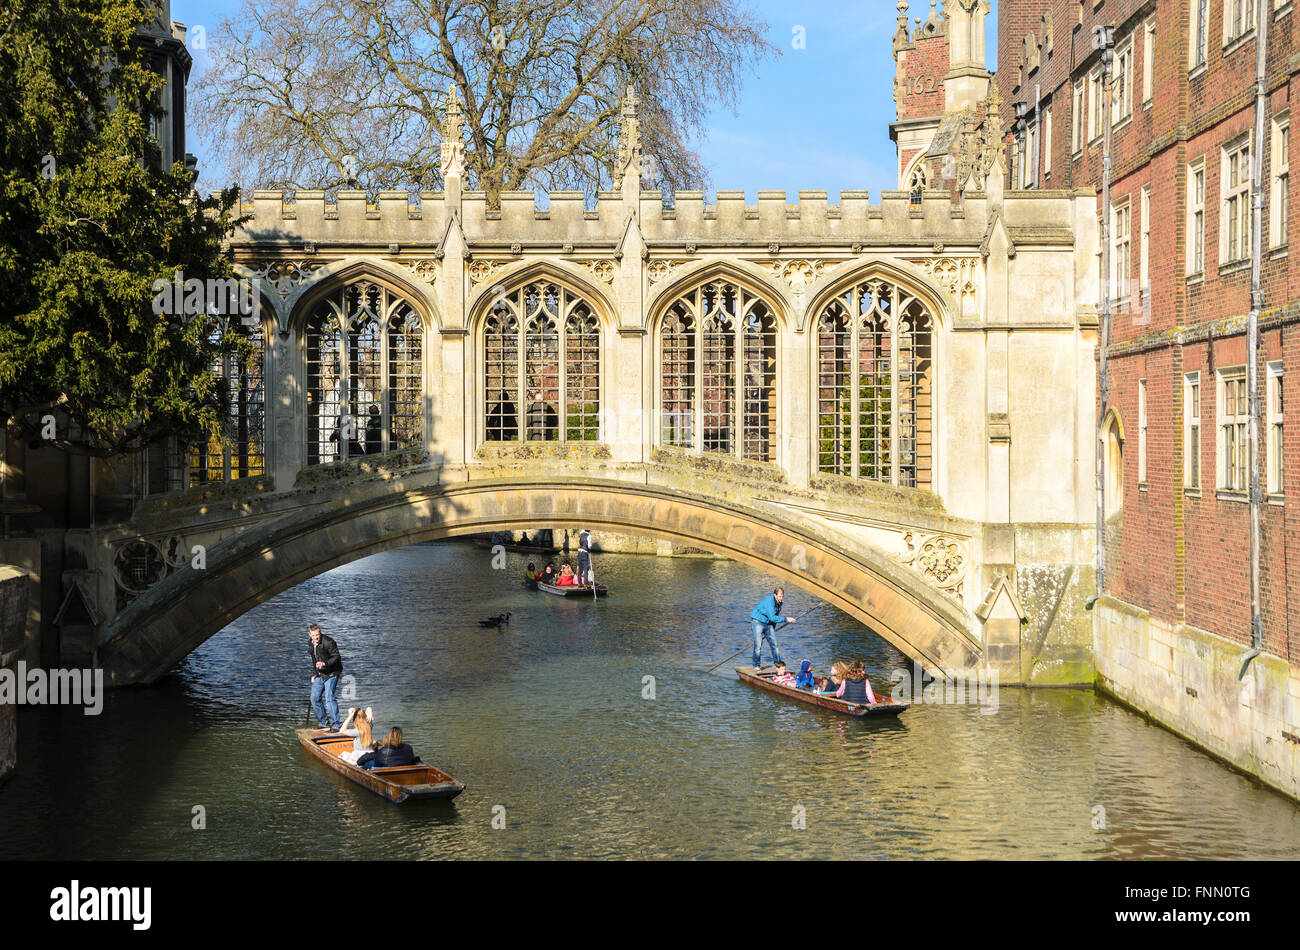 The bridge commonly known as the 'Bridge of Sighs' over the River Cam, St Johns College, Cambridge, England, - Stock Image